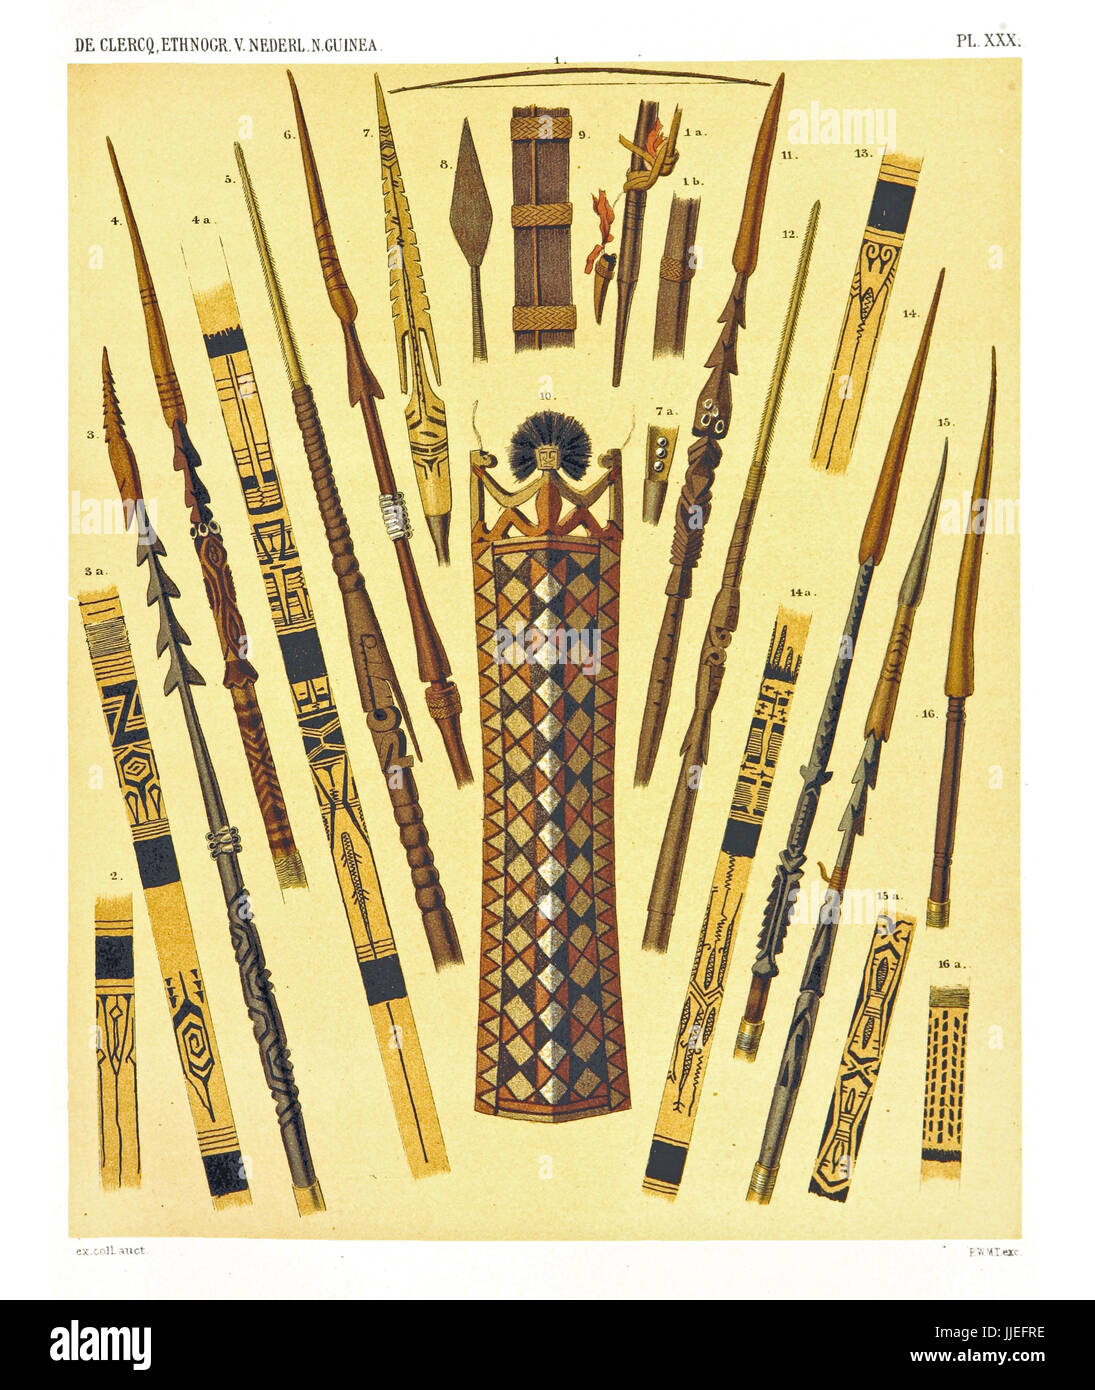 Illustration of ethnic objects from the West and North coast of  Dutch New Guinea. By F.S.A. De Clercq and J.D.E. - Stock Image